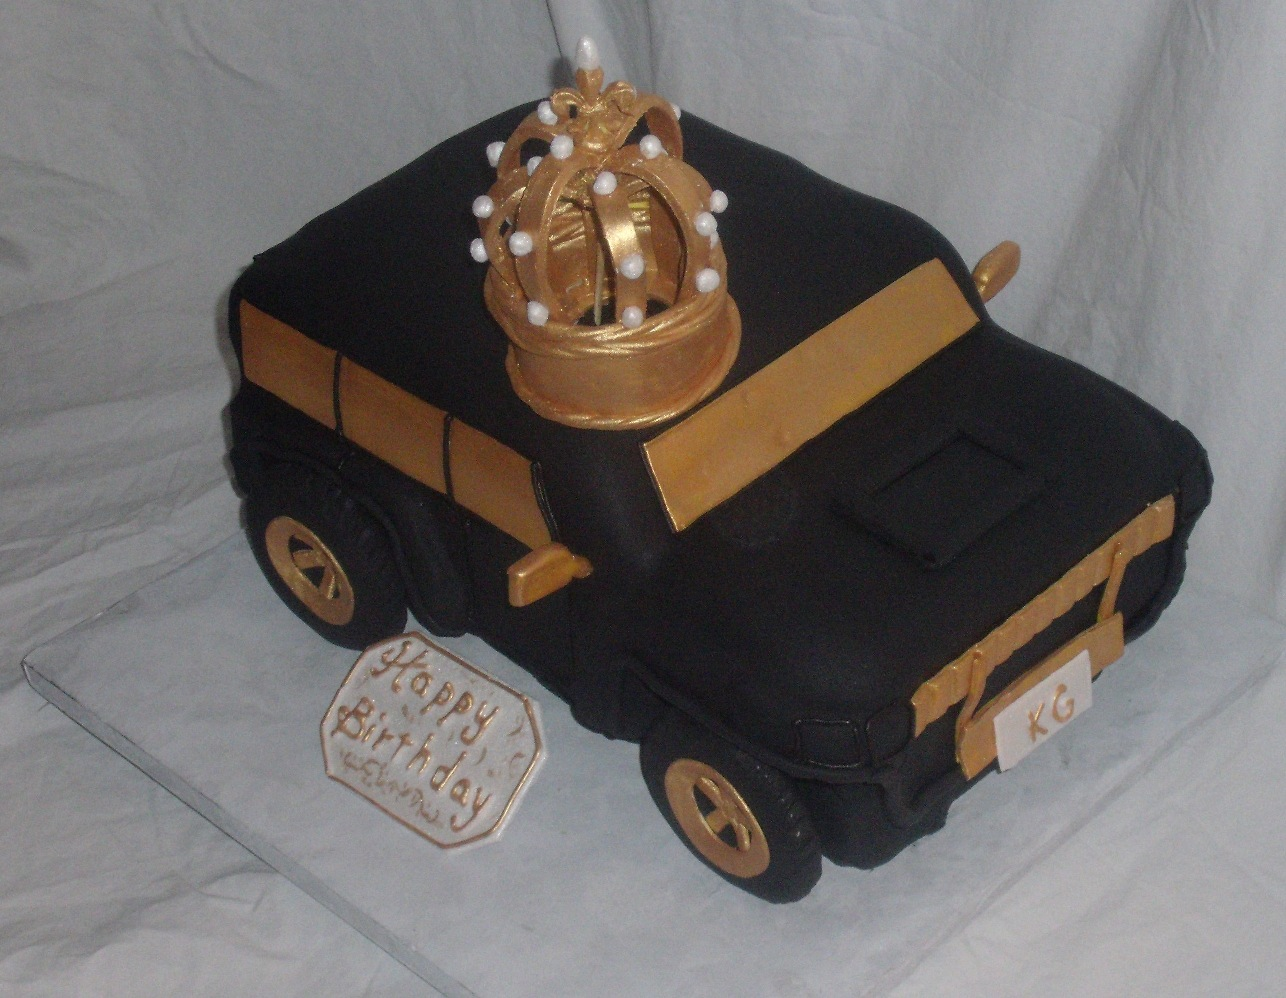 2010 Hummer Car Cake with Edible Kings Crown